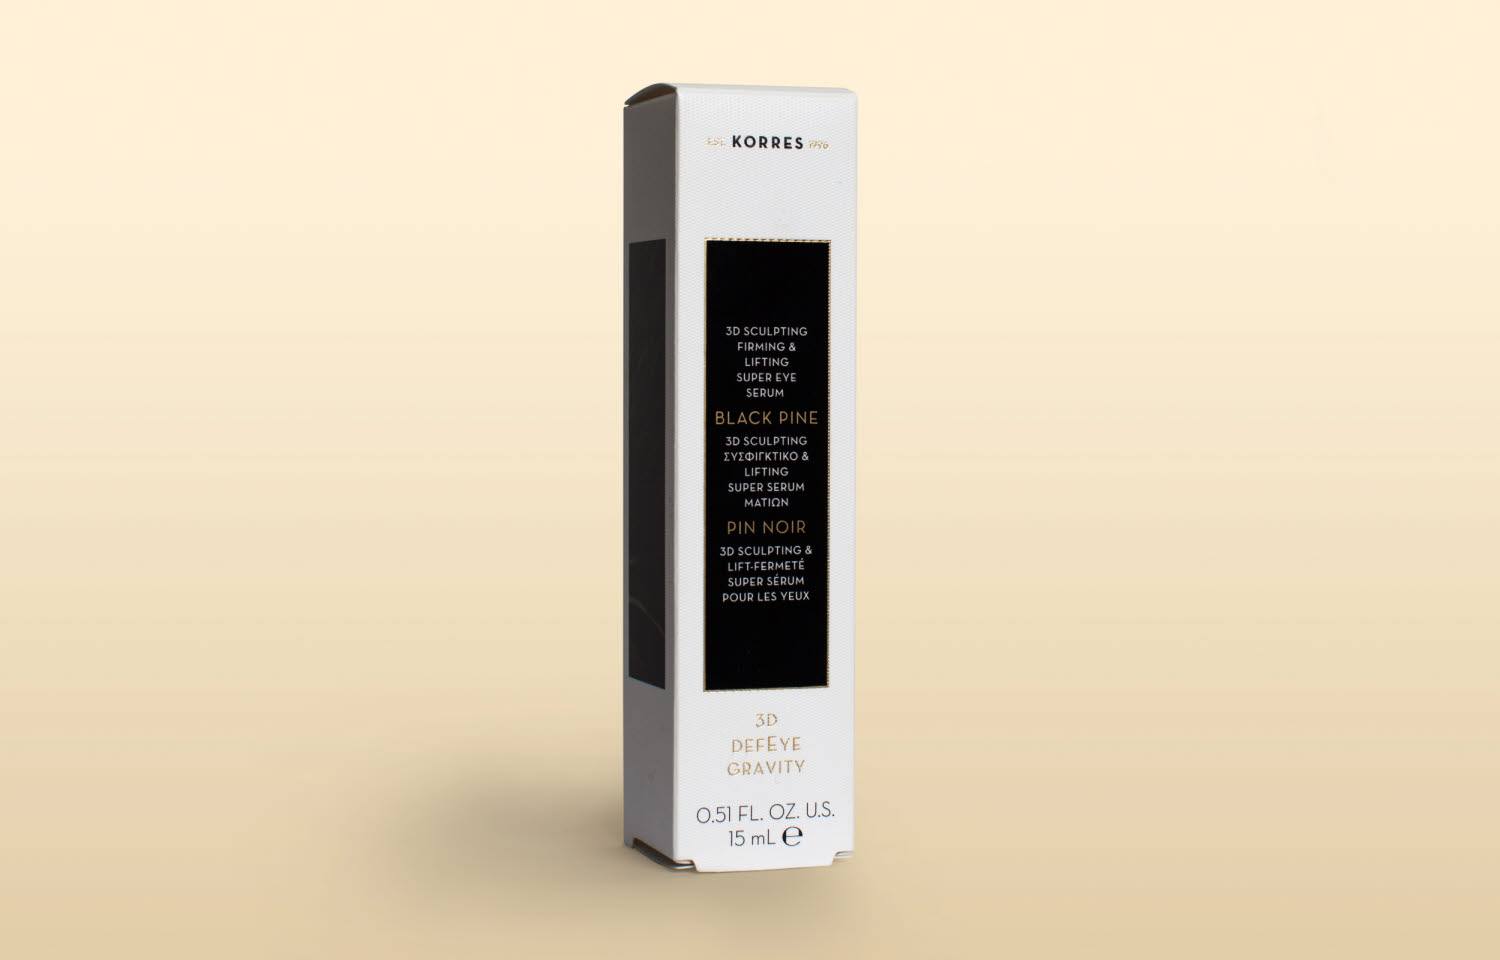 korres skincare collection packaging